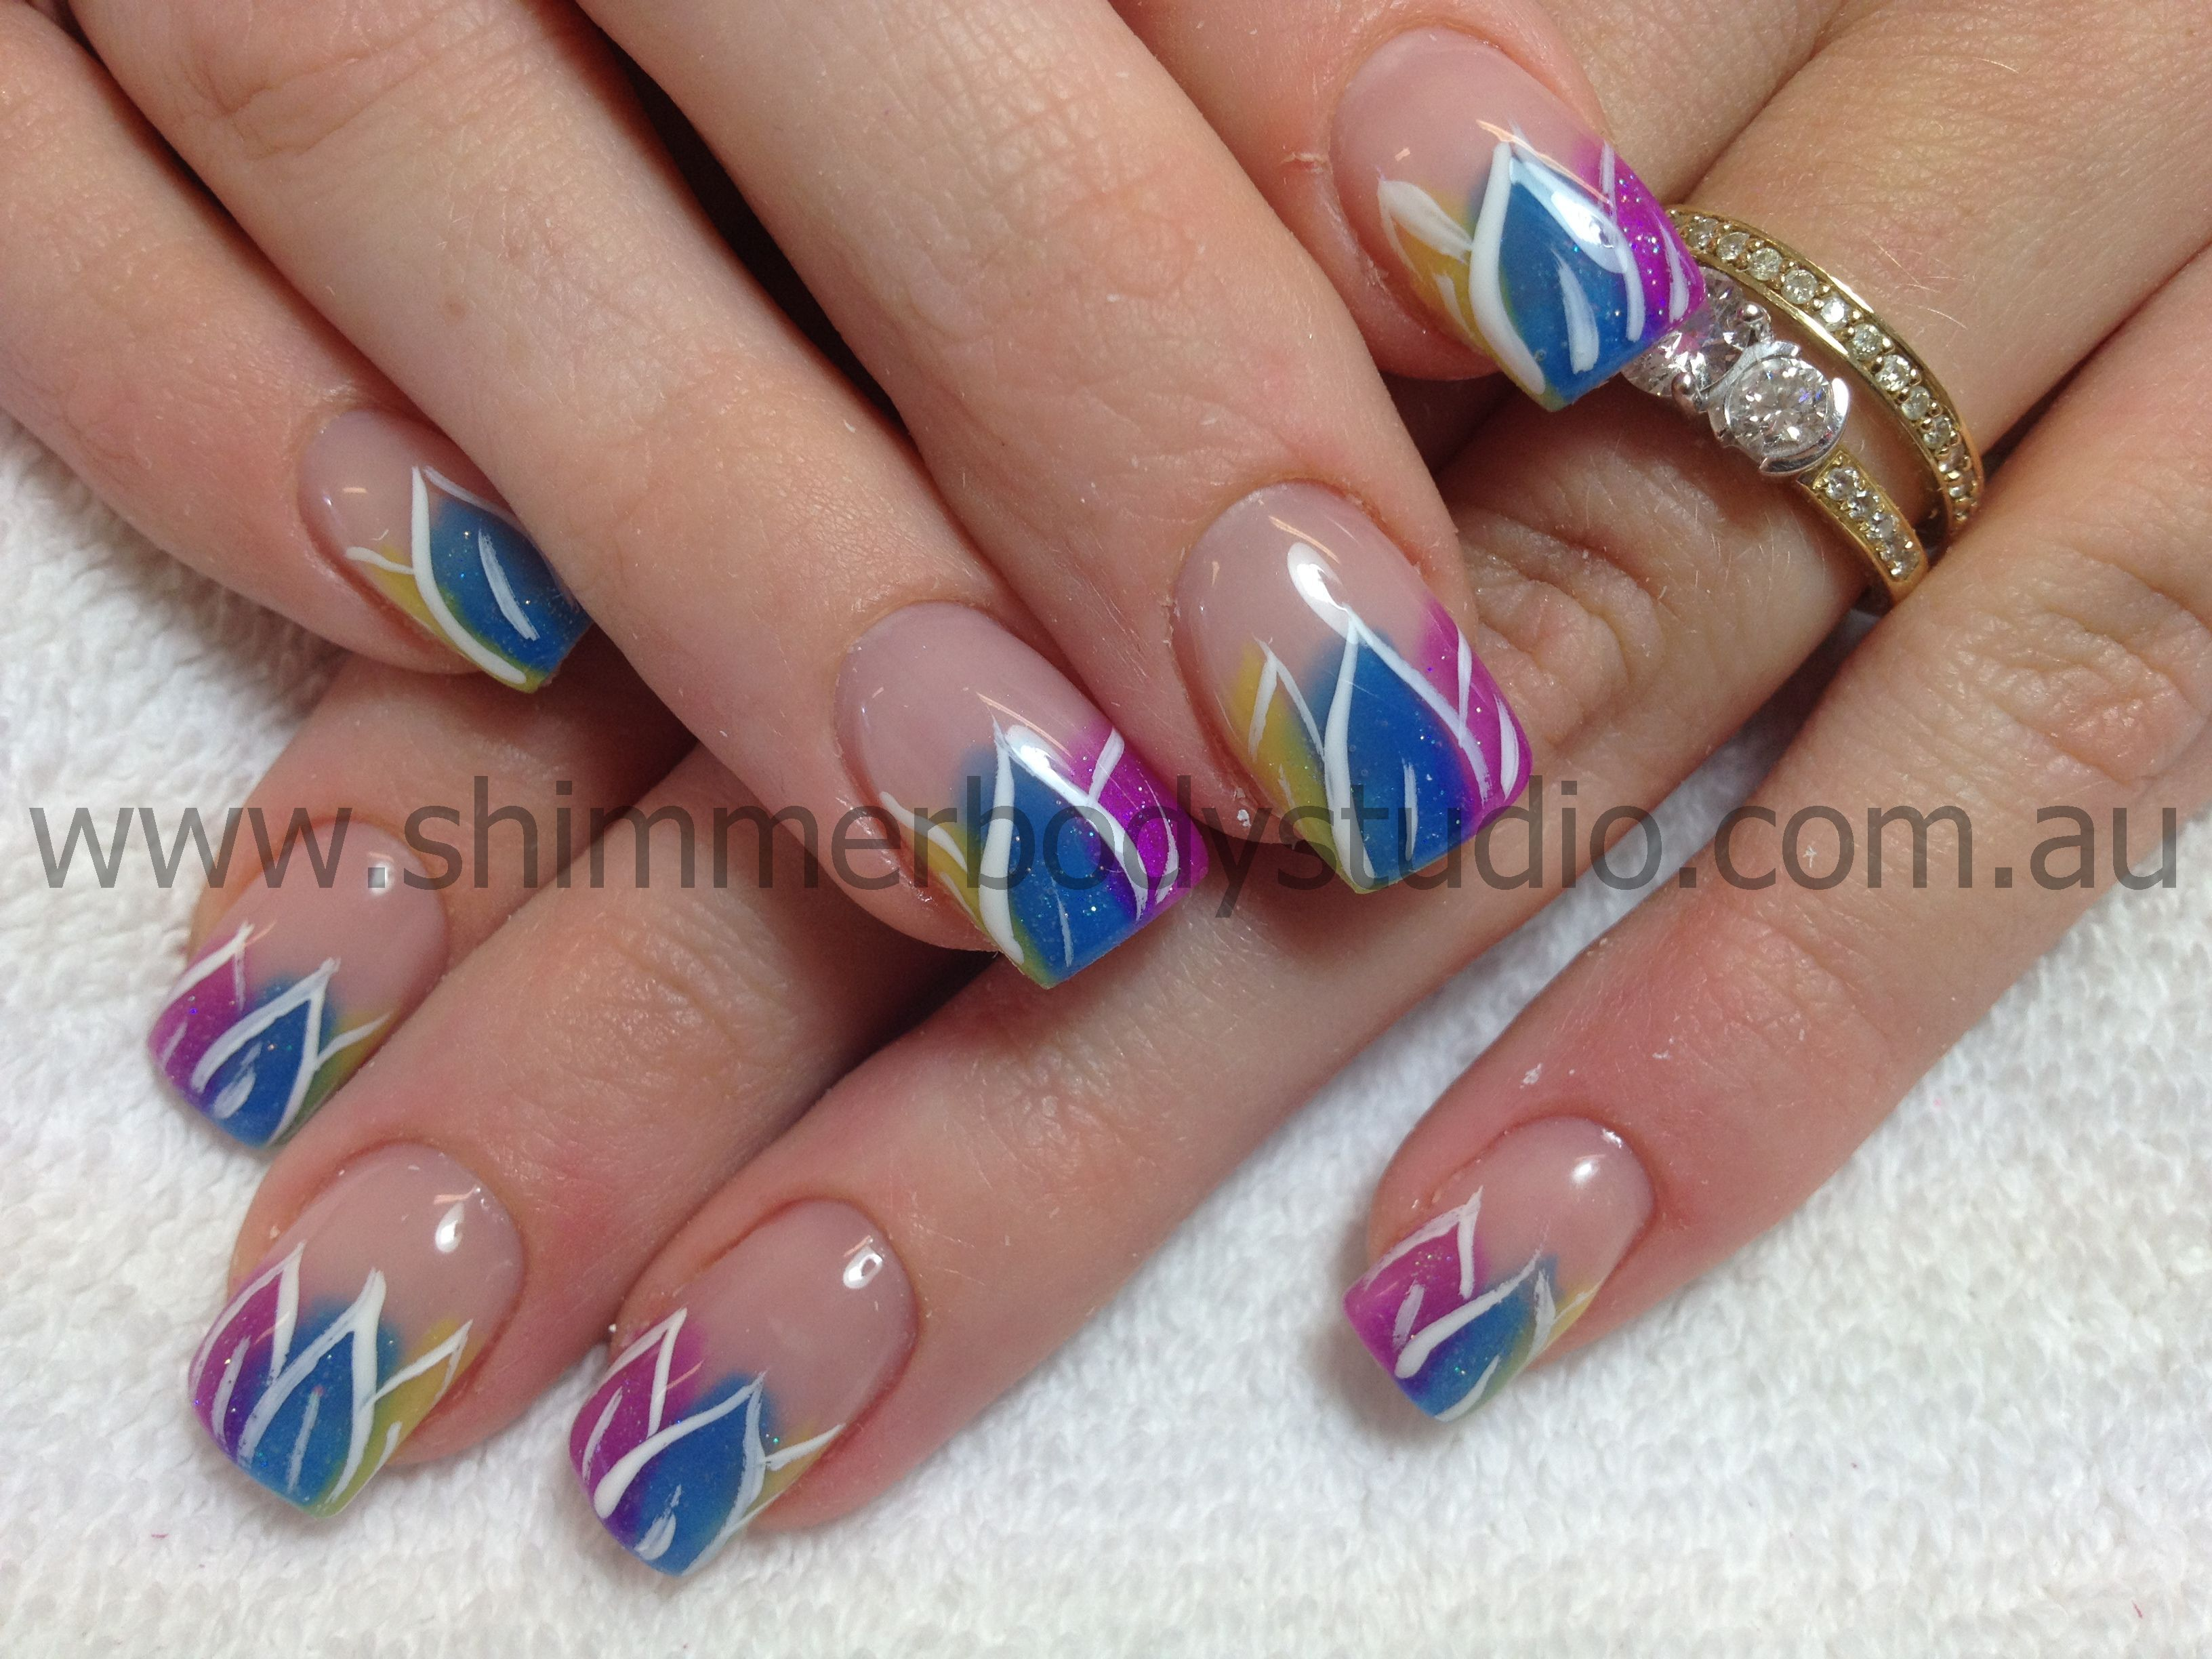 Pin By Ashley Dickison On Nails Colour Or Glitter French Gel Nails Feather Nails Toe Art